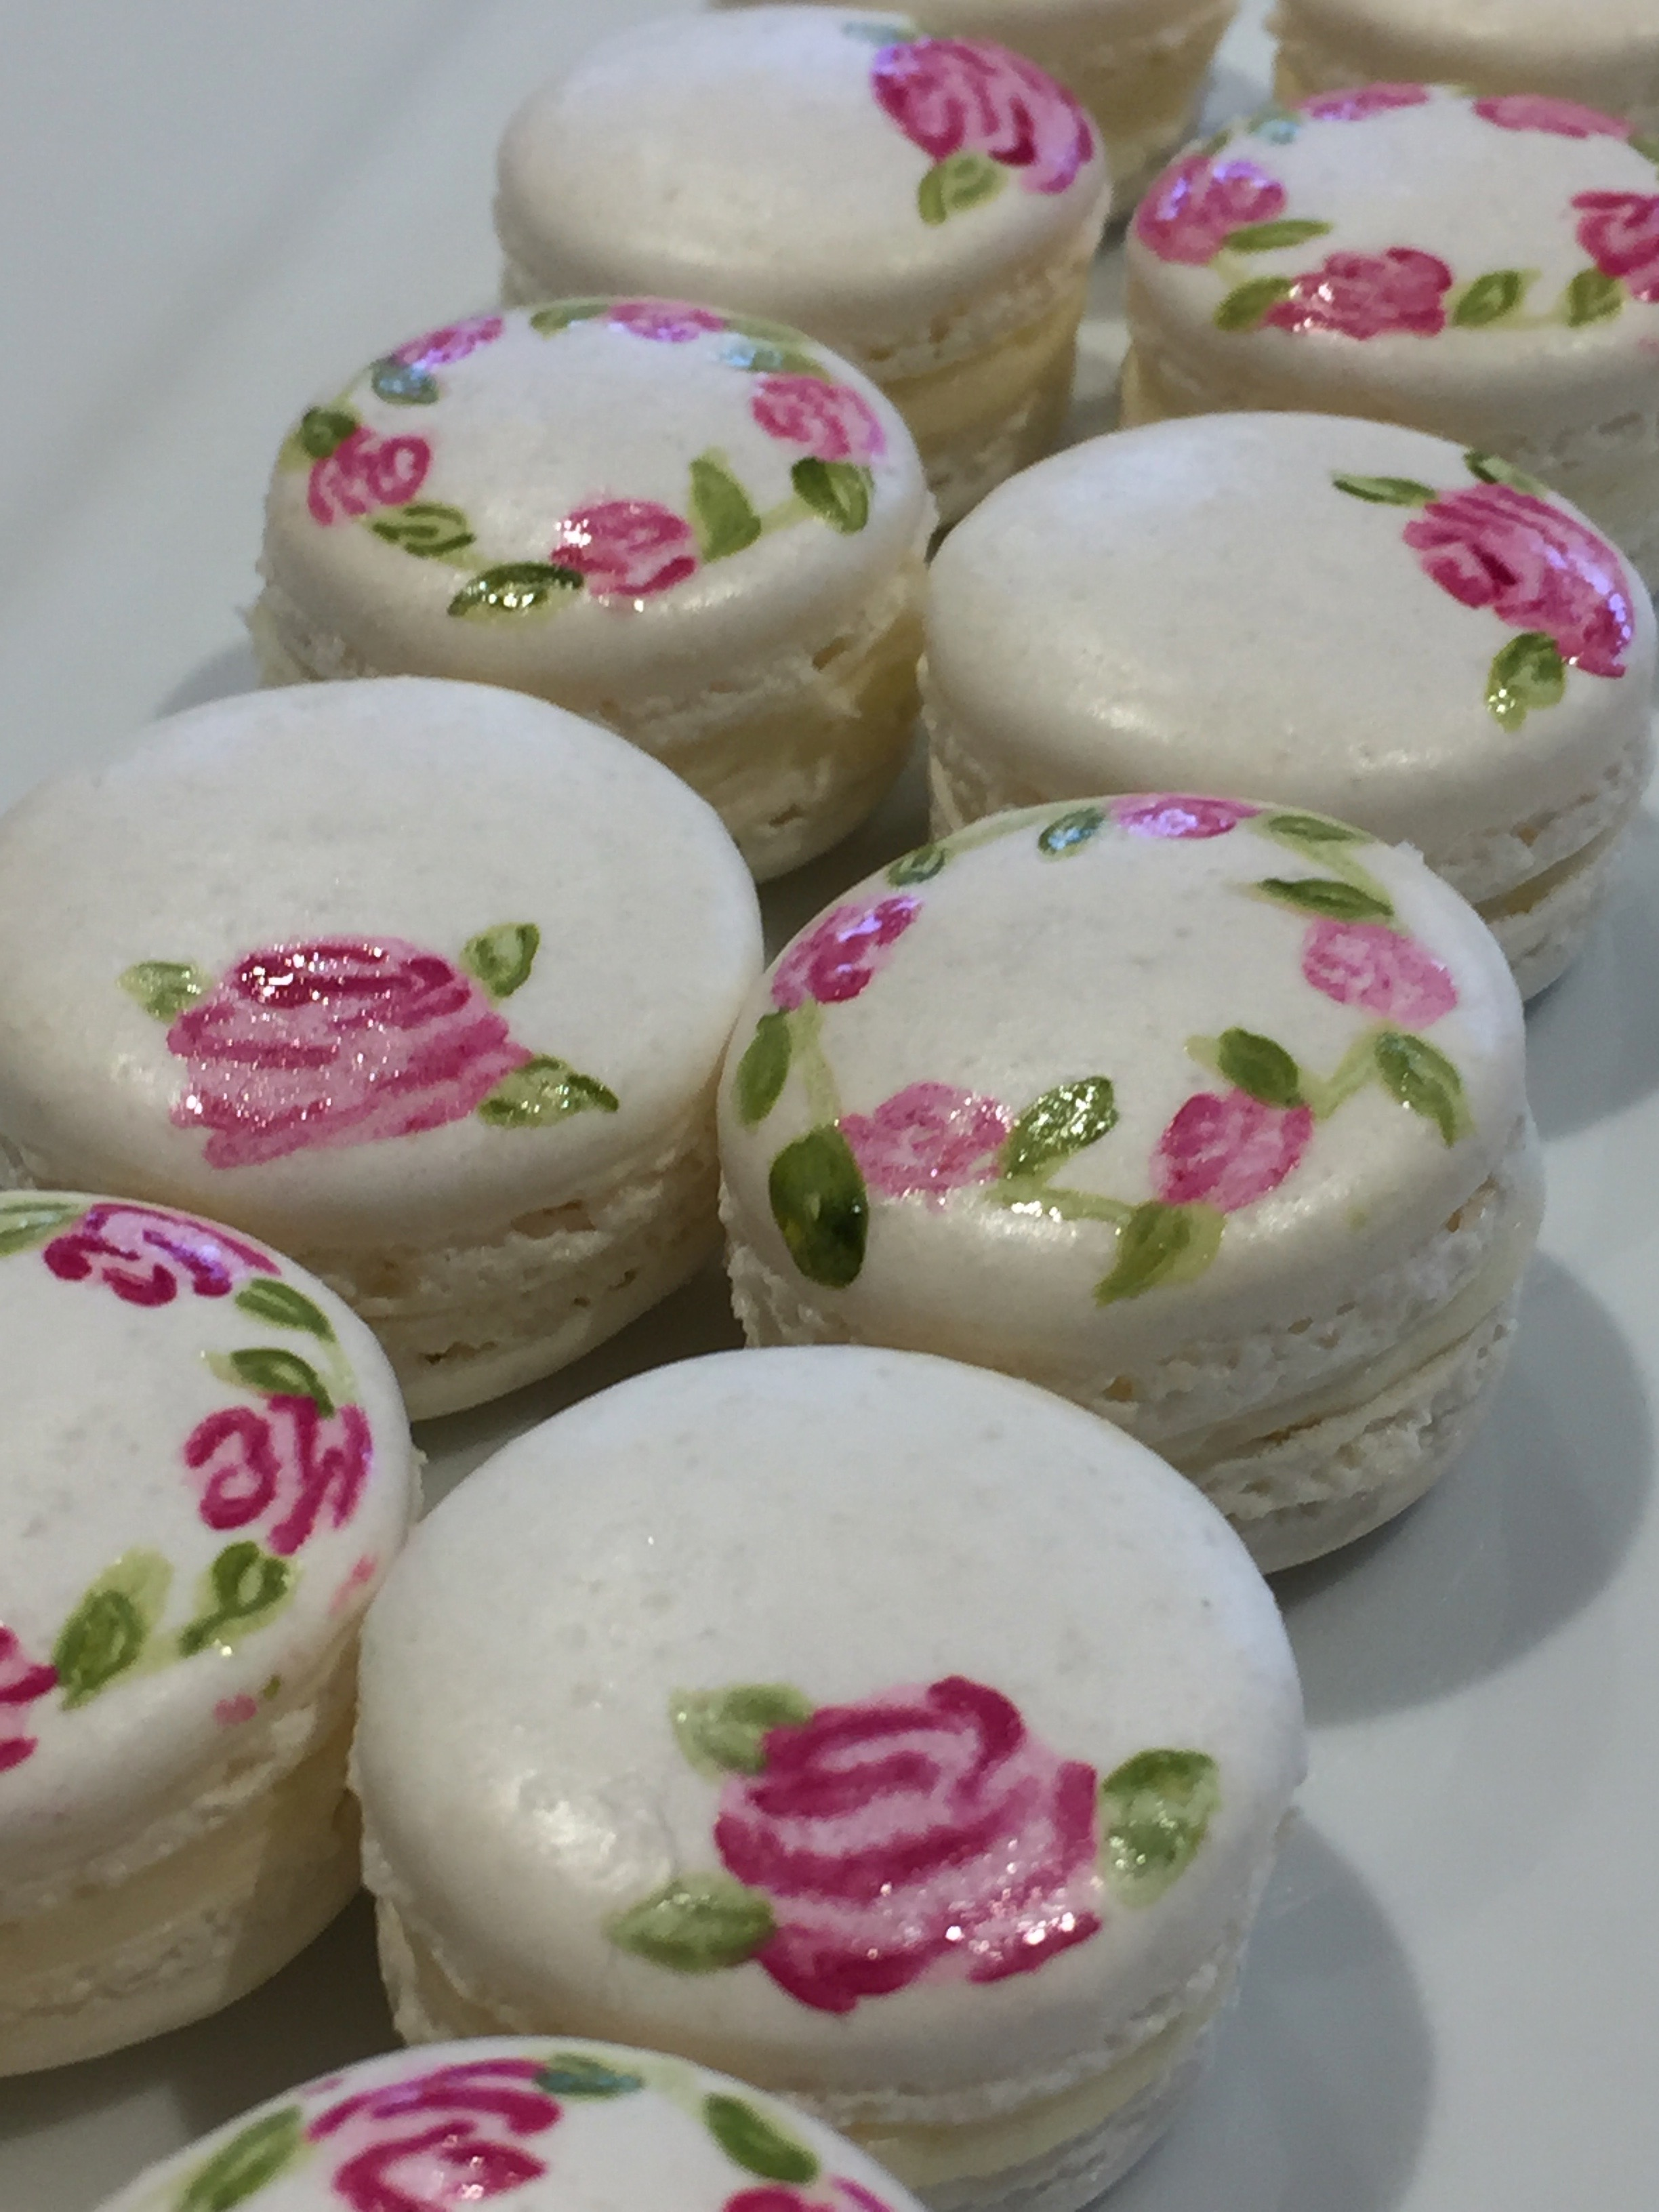 Dolce Lusso Cakes handpainted macarons pink rose